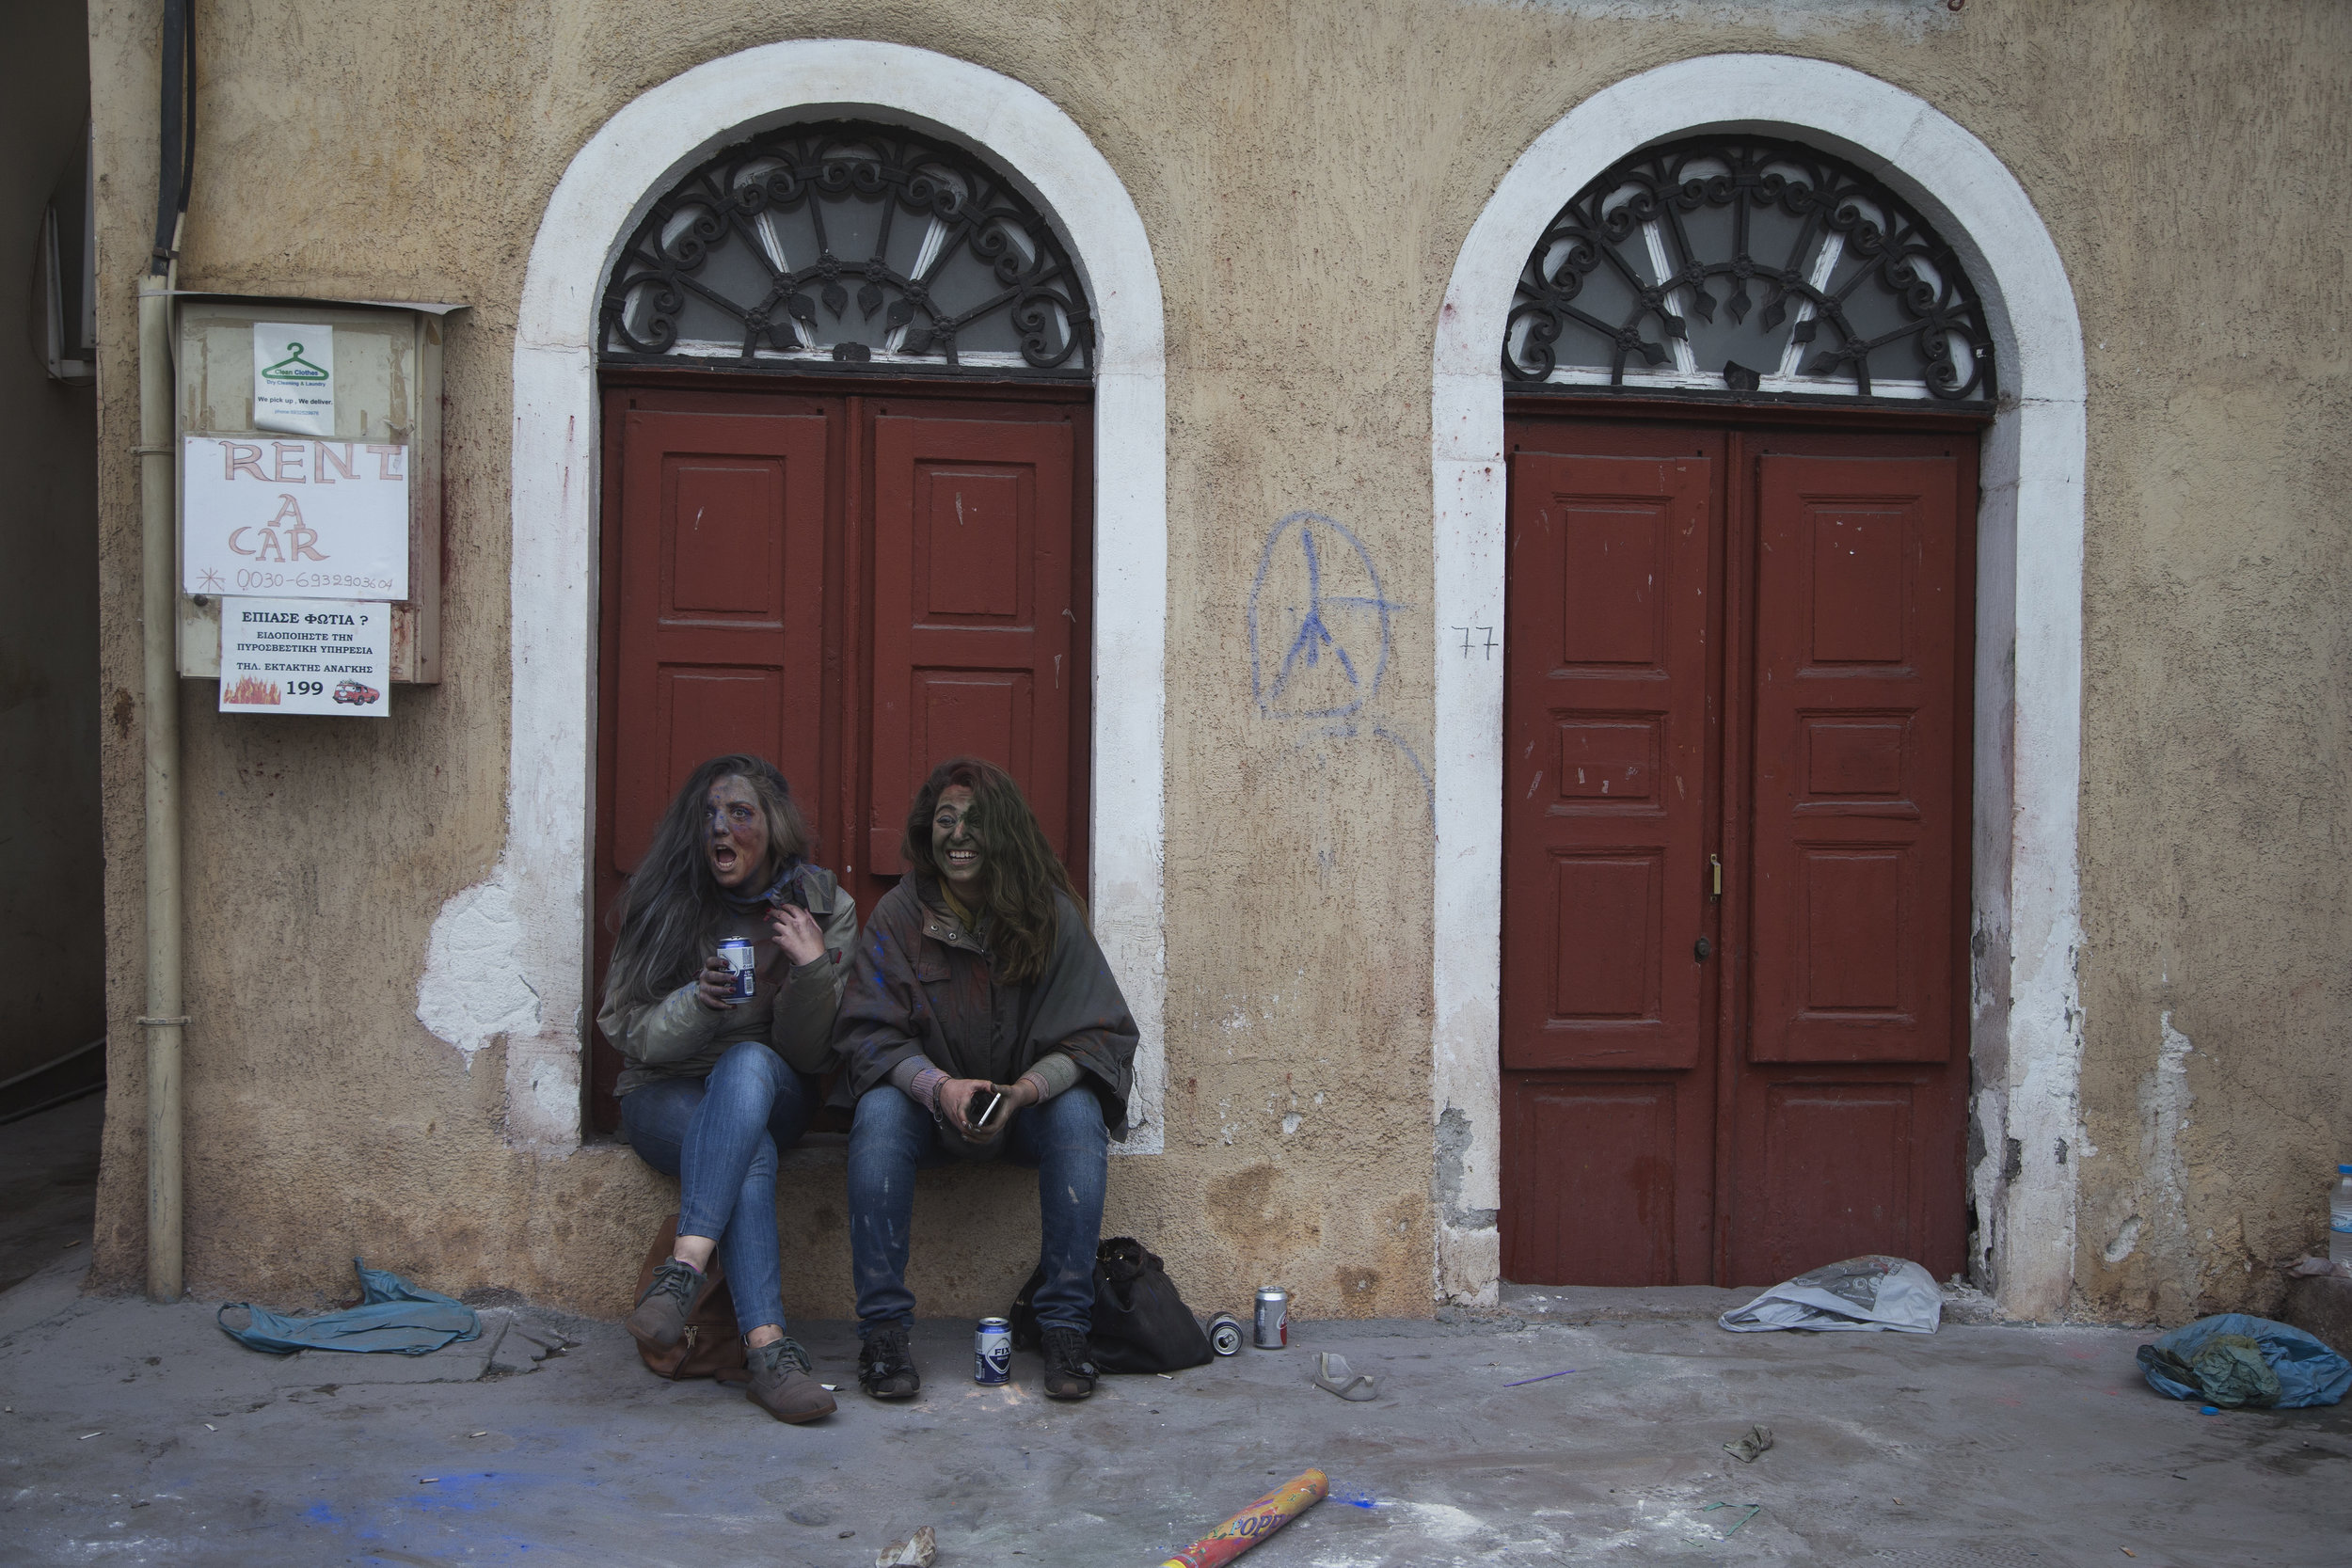 In this Monday, Feb. 19, 2018 photo, twin sisters sit outside a house as they watch revelers taking part in the flour war, a unique colorful flour fight marking the end of the carnival season in the port town of Galaxidi, some 200 kilometers (120 miles) west of Athens.  (AP Photo/Petros Giannakouris)